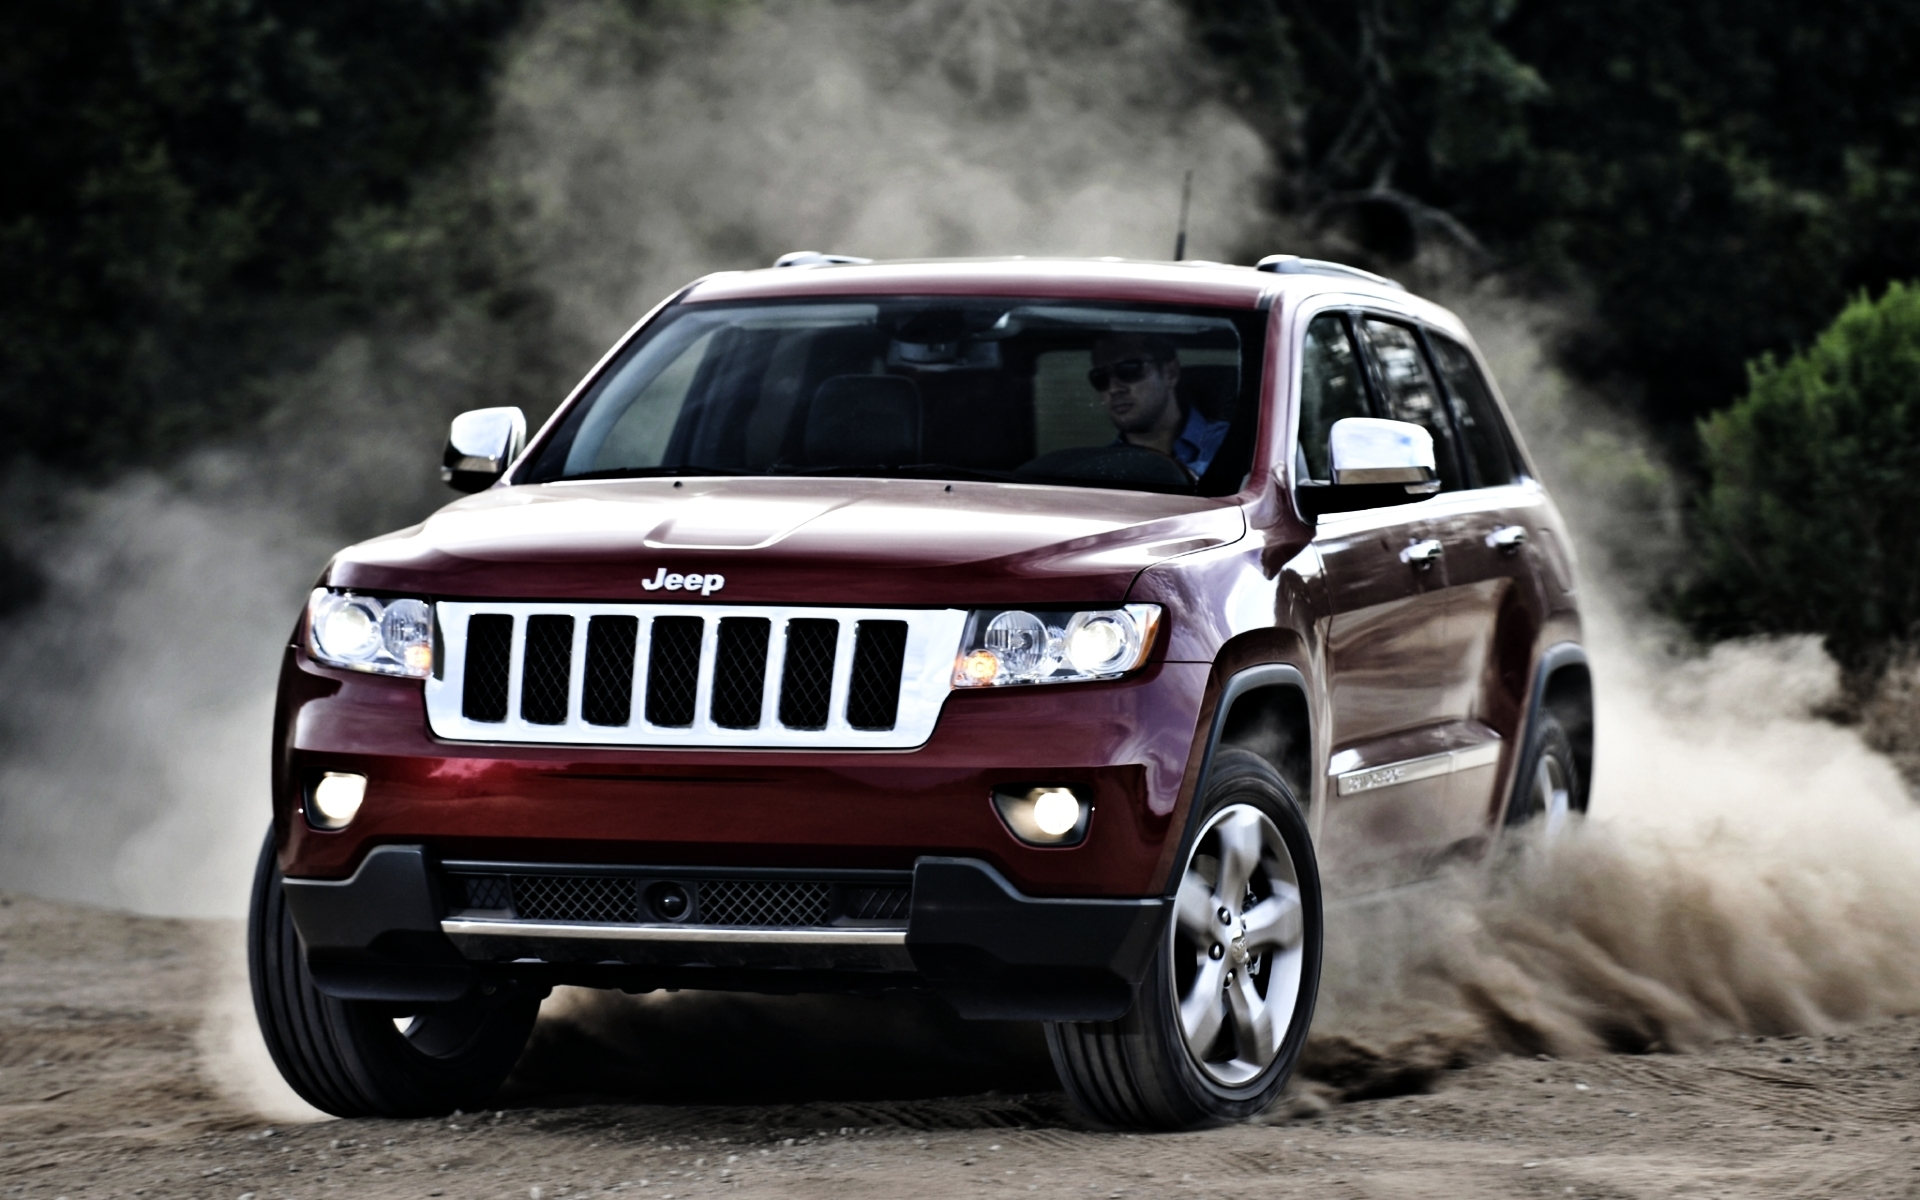 hd wallpapers jeep grand cherokee